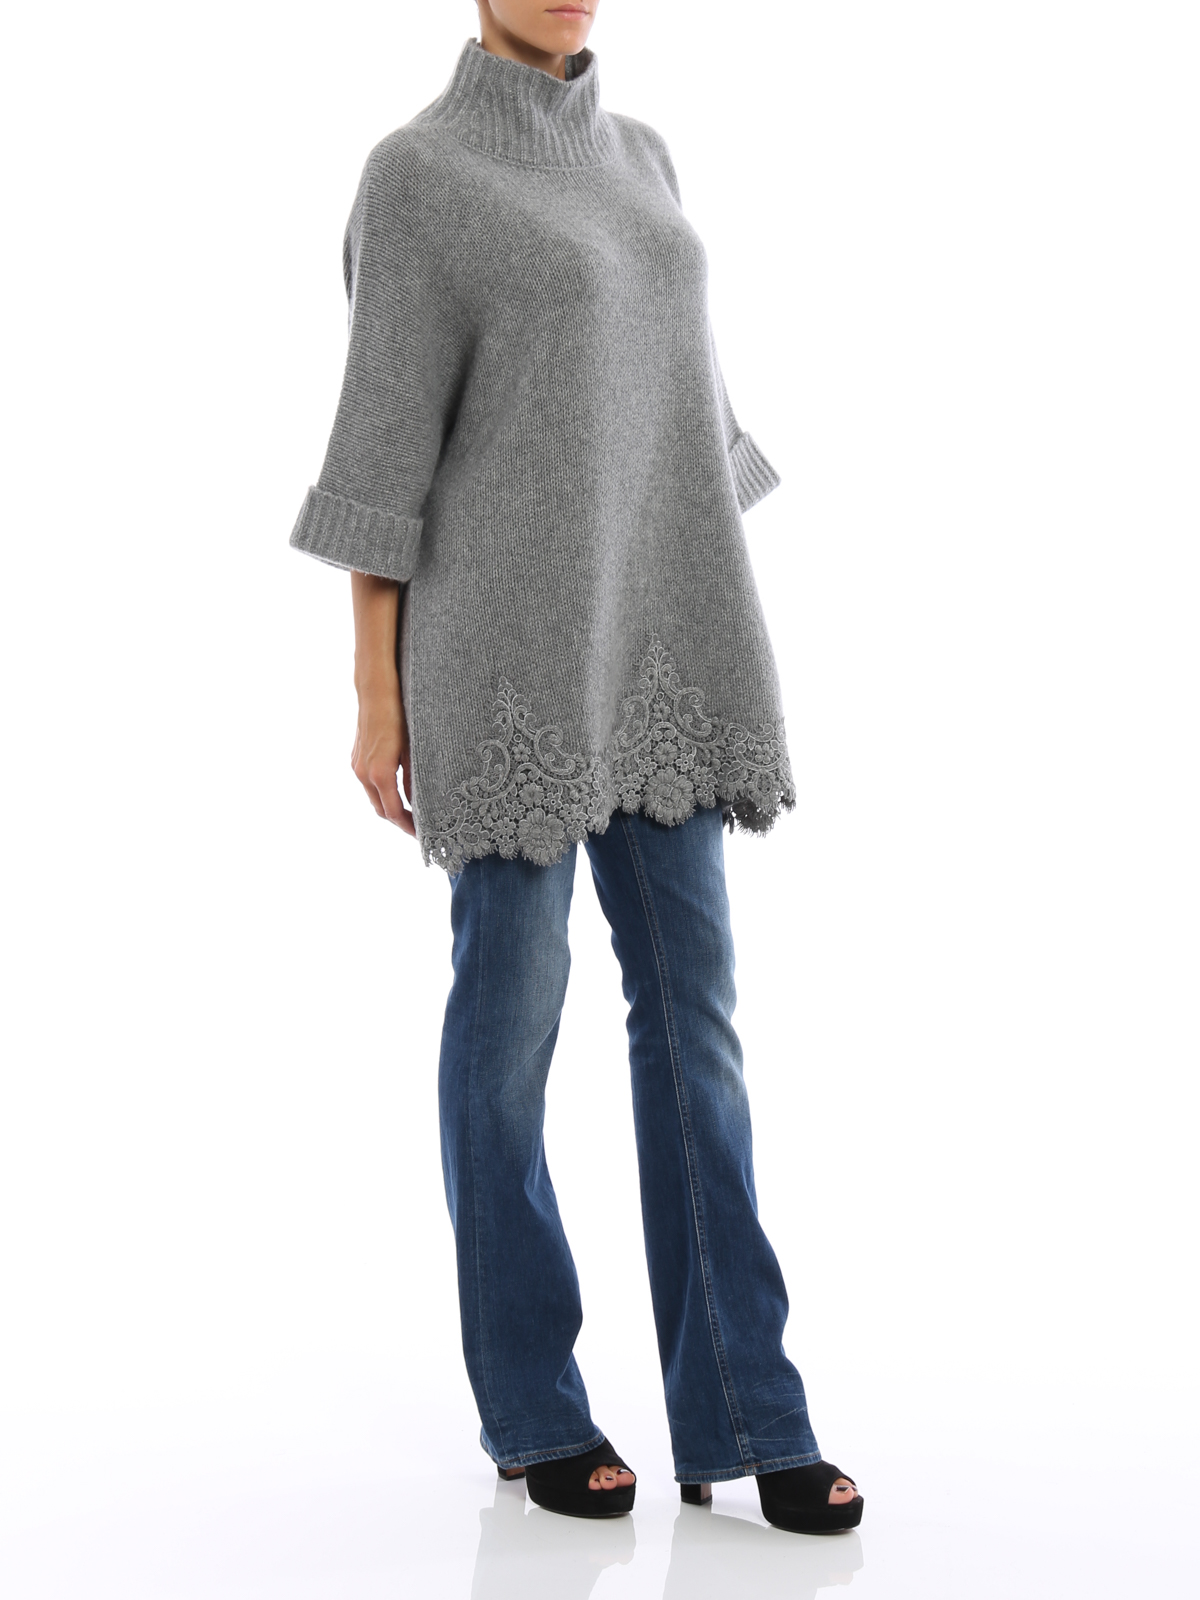 ea8e1573e70 Ermanno Scervino - Cashmere lace embellished cape - Turtlenecks ...